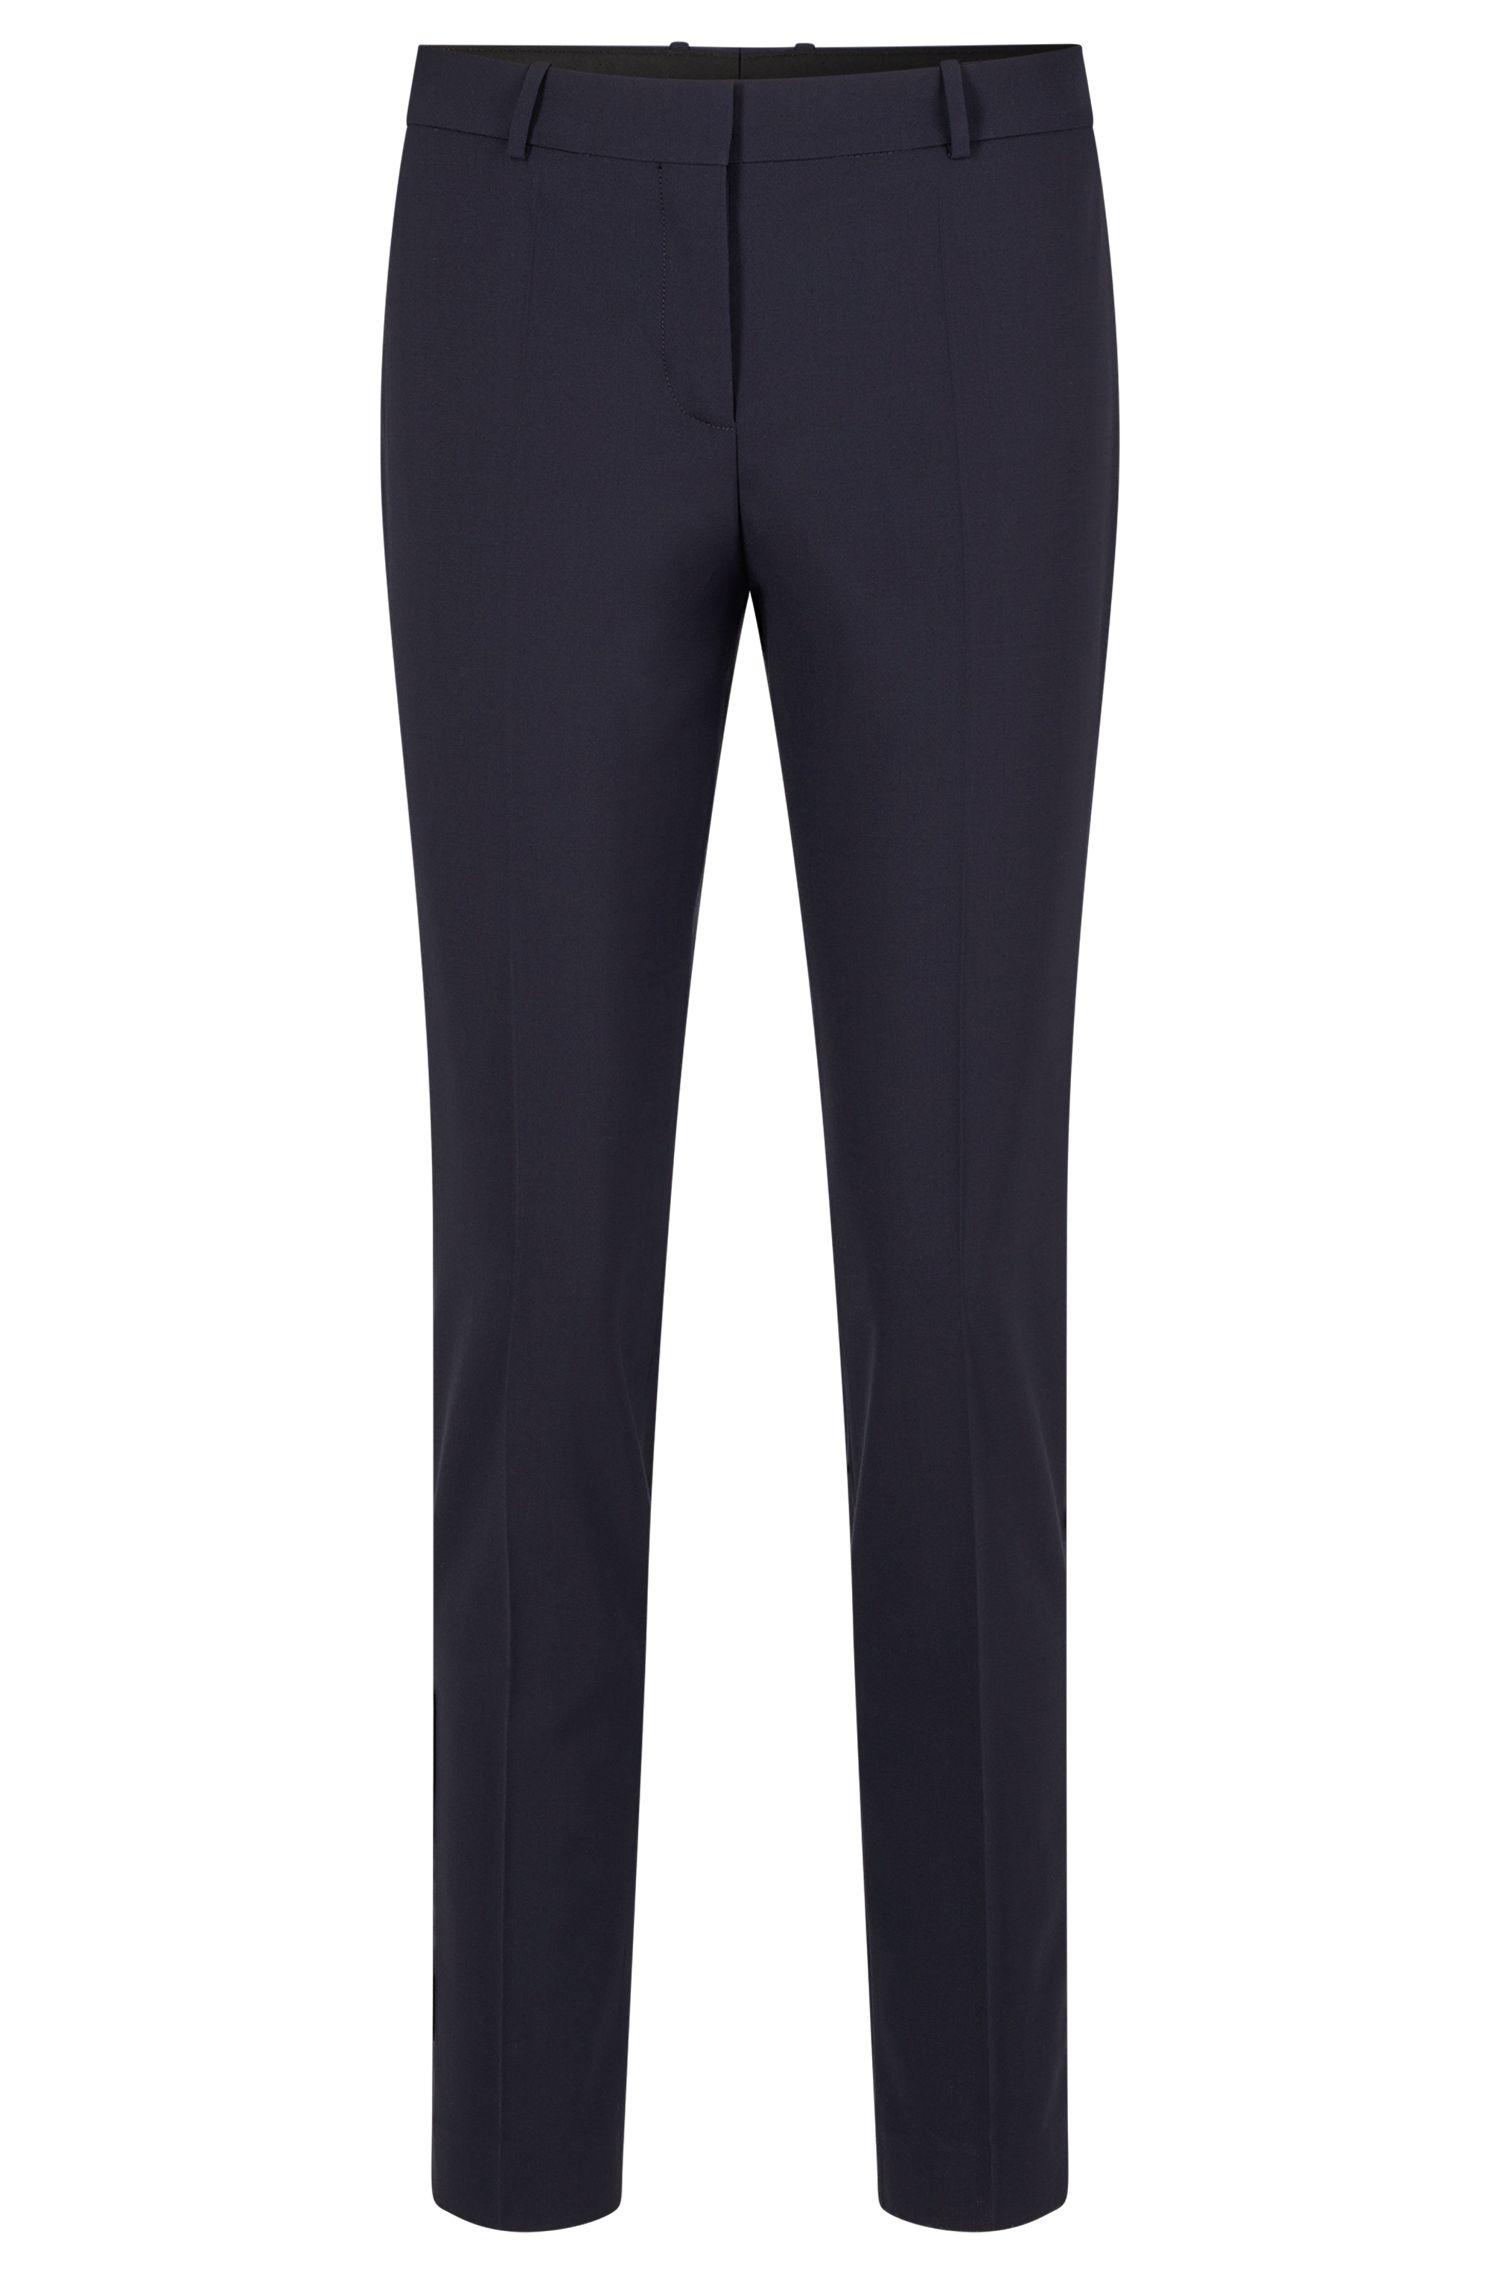 Slim-Fit Hose in Cropped-Länge, Dunkelblau